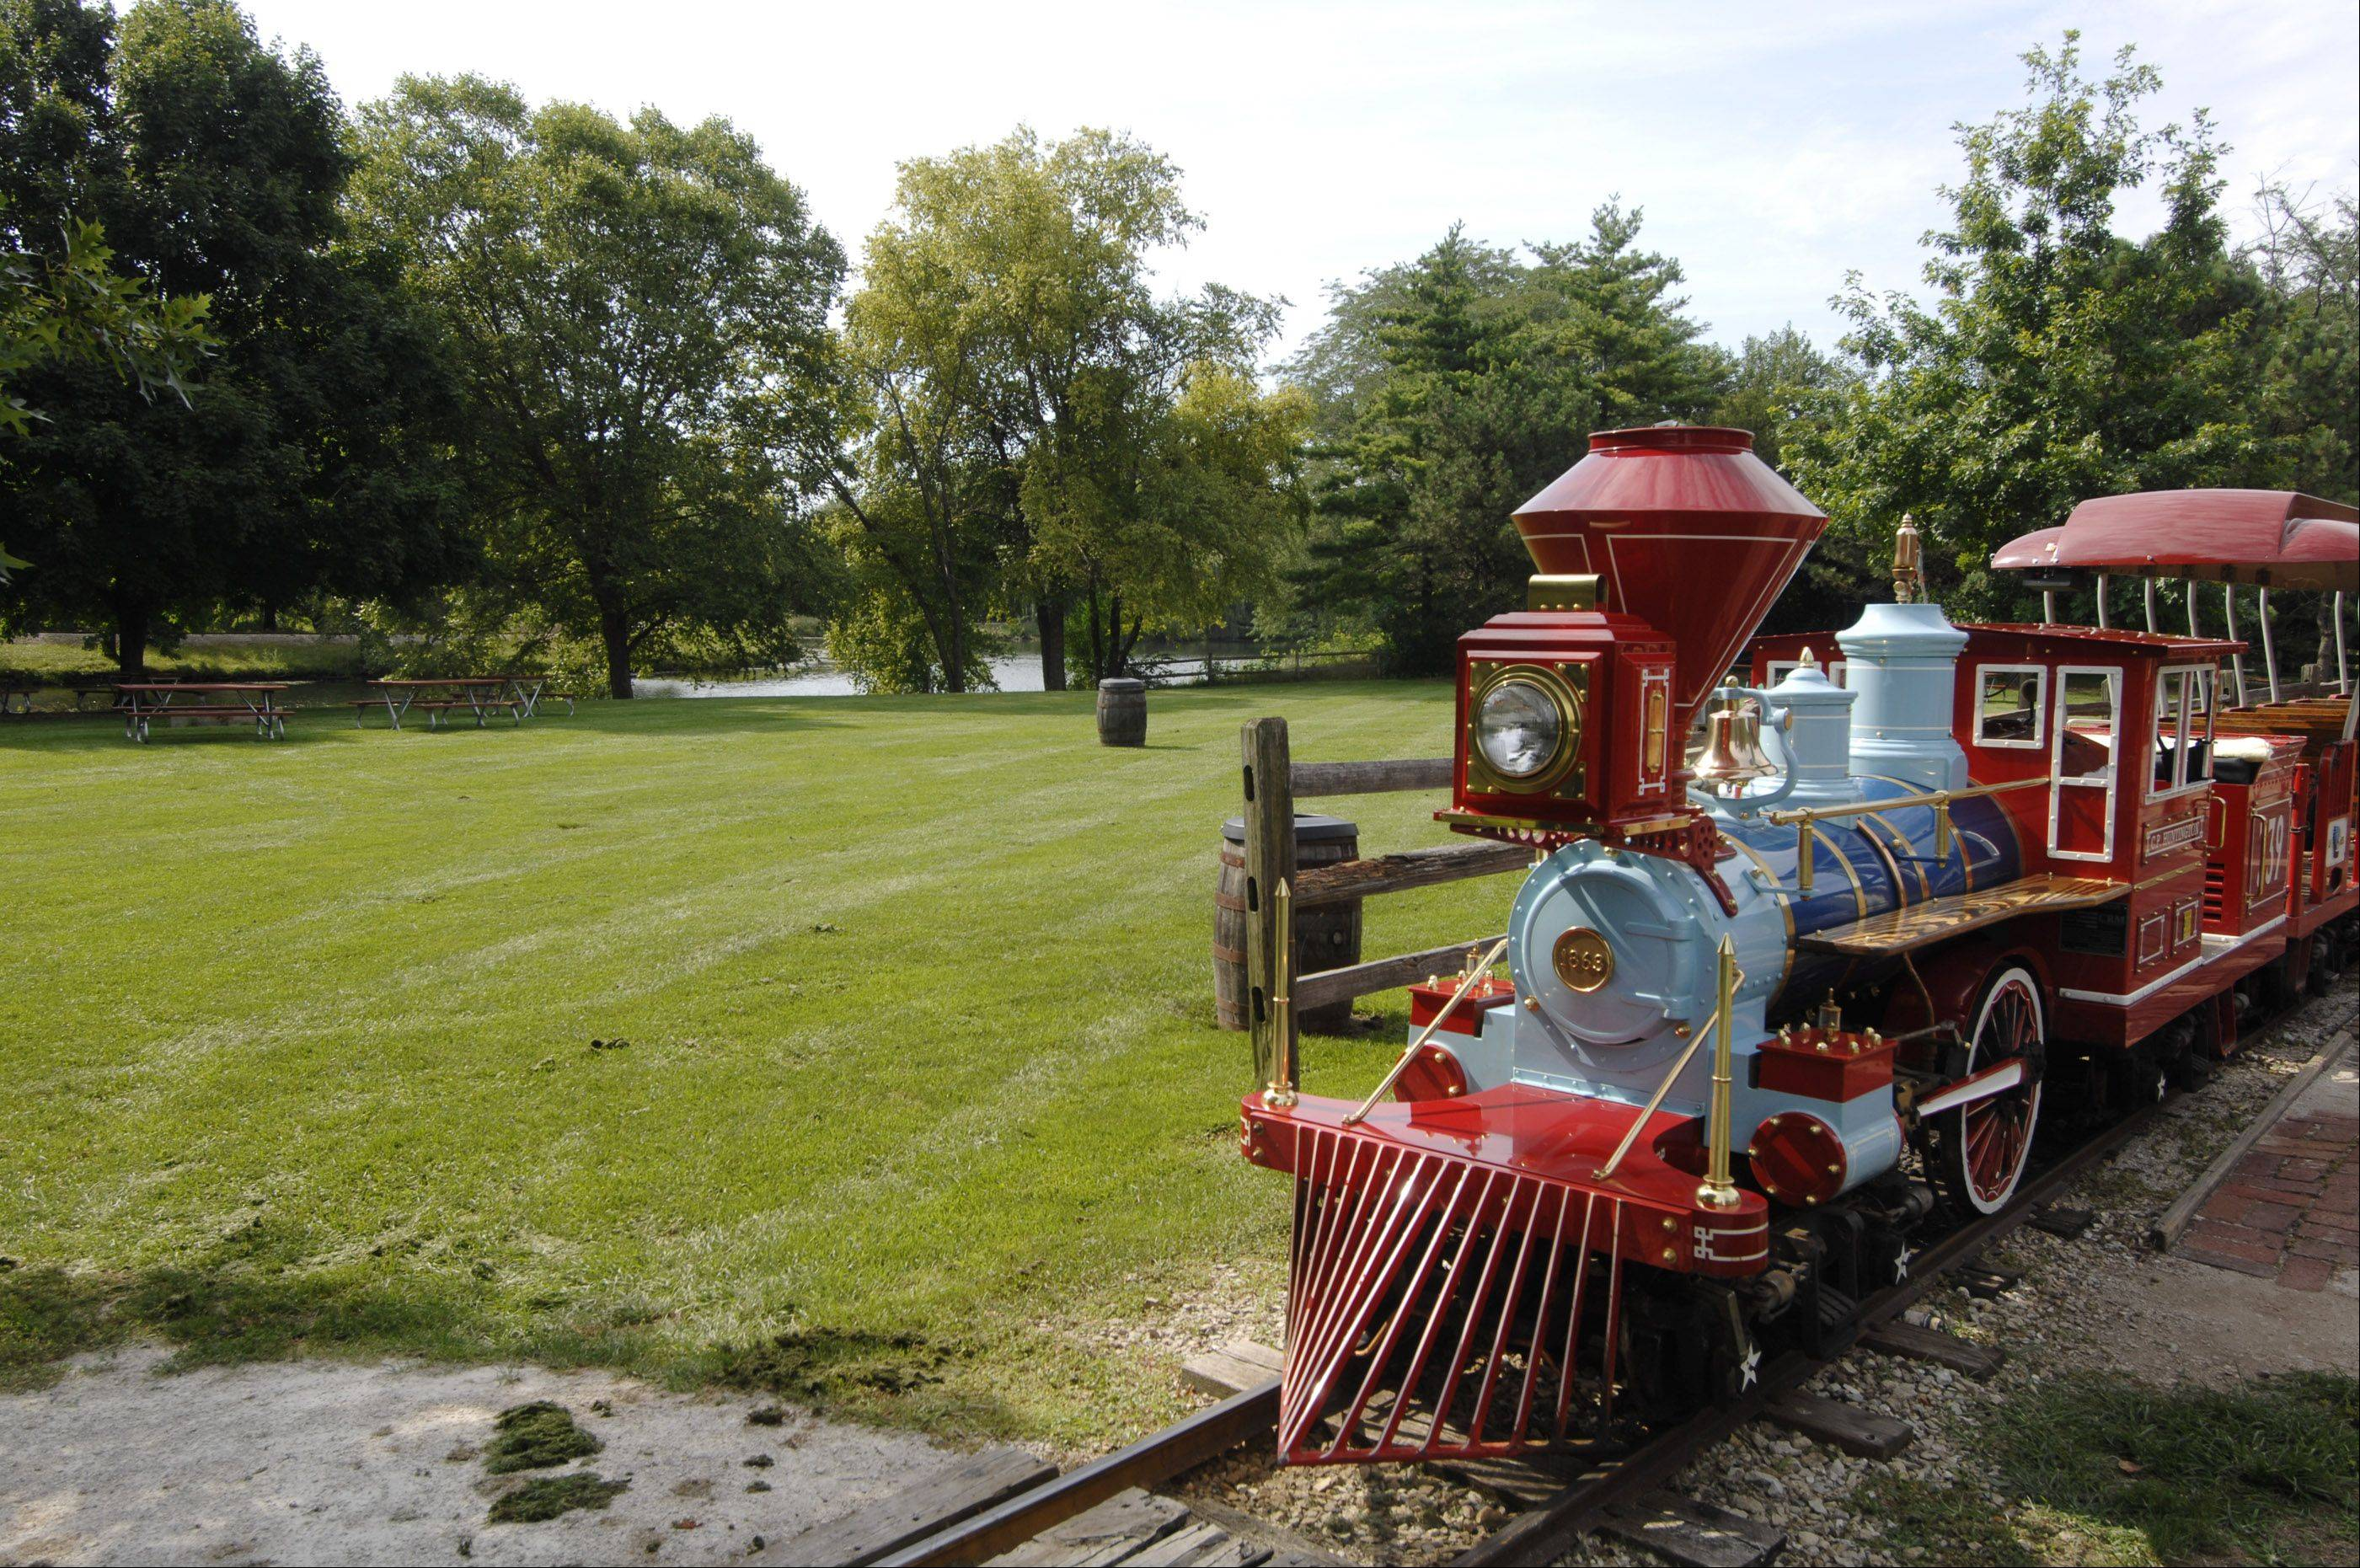 The miniature train around Blackberry Farm's grounds isn't changing as the farm undergoes $1.5 million in renovations, but a paddle boat dock and boathouse will be added to the shores of Lake Gregory near the train depot.